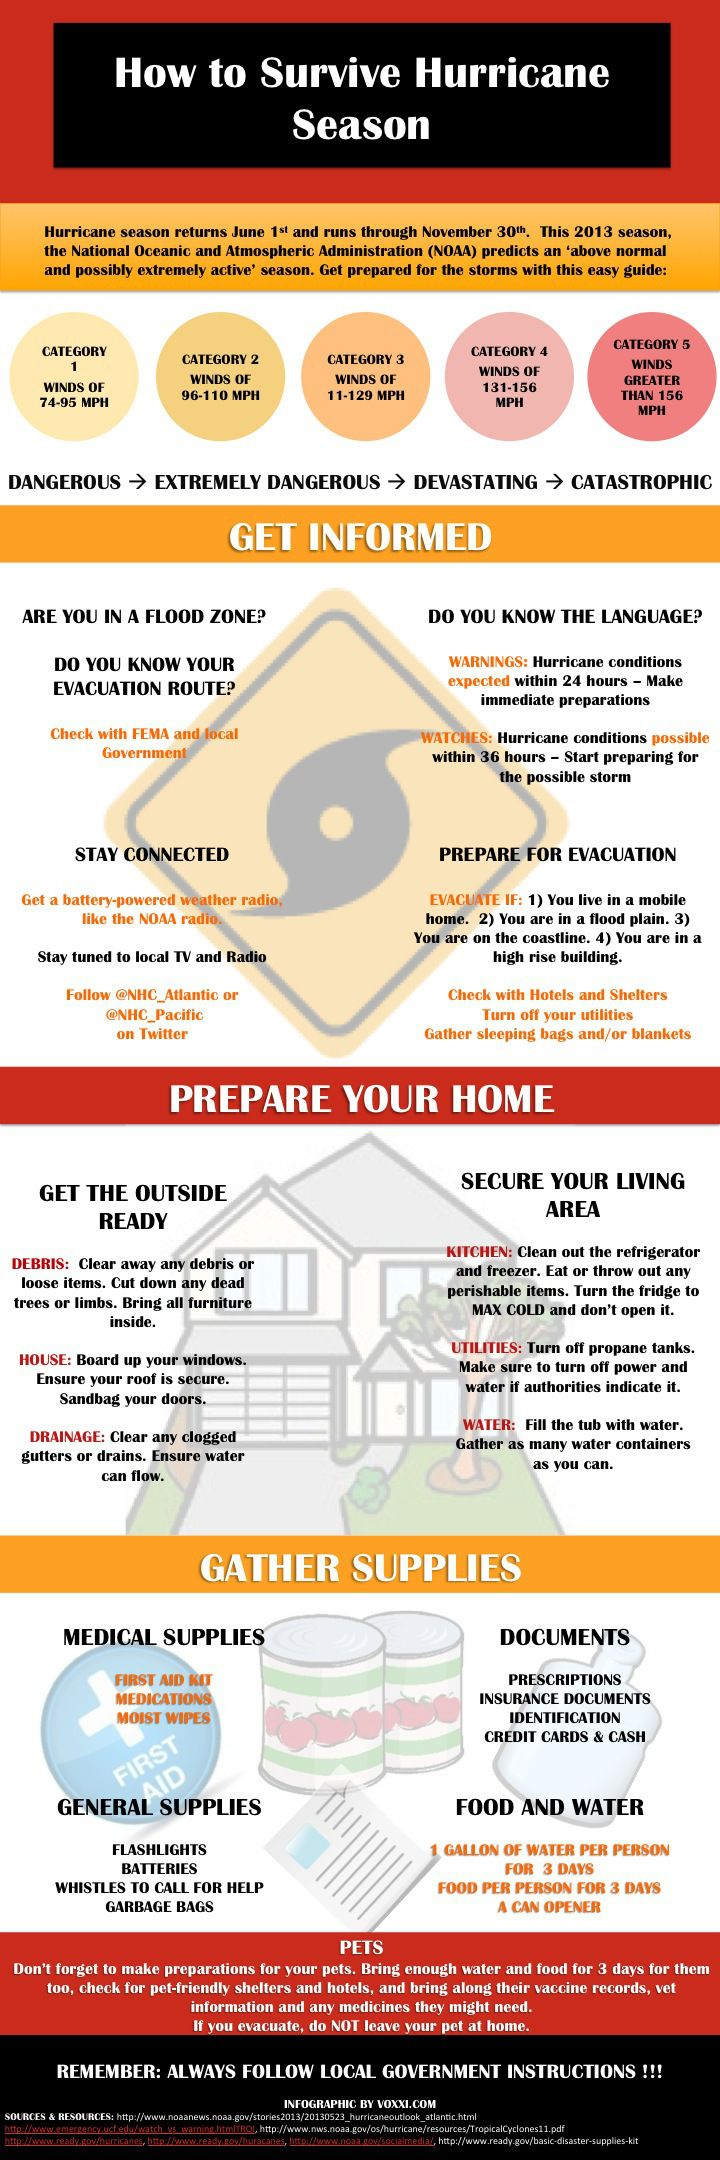 Hurricane Survival Kit List & Preparedness Tips